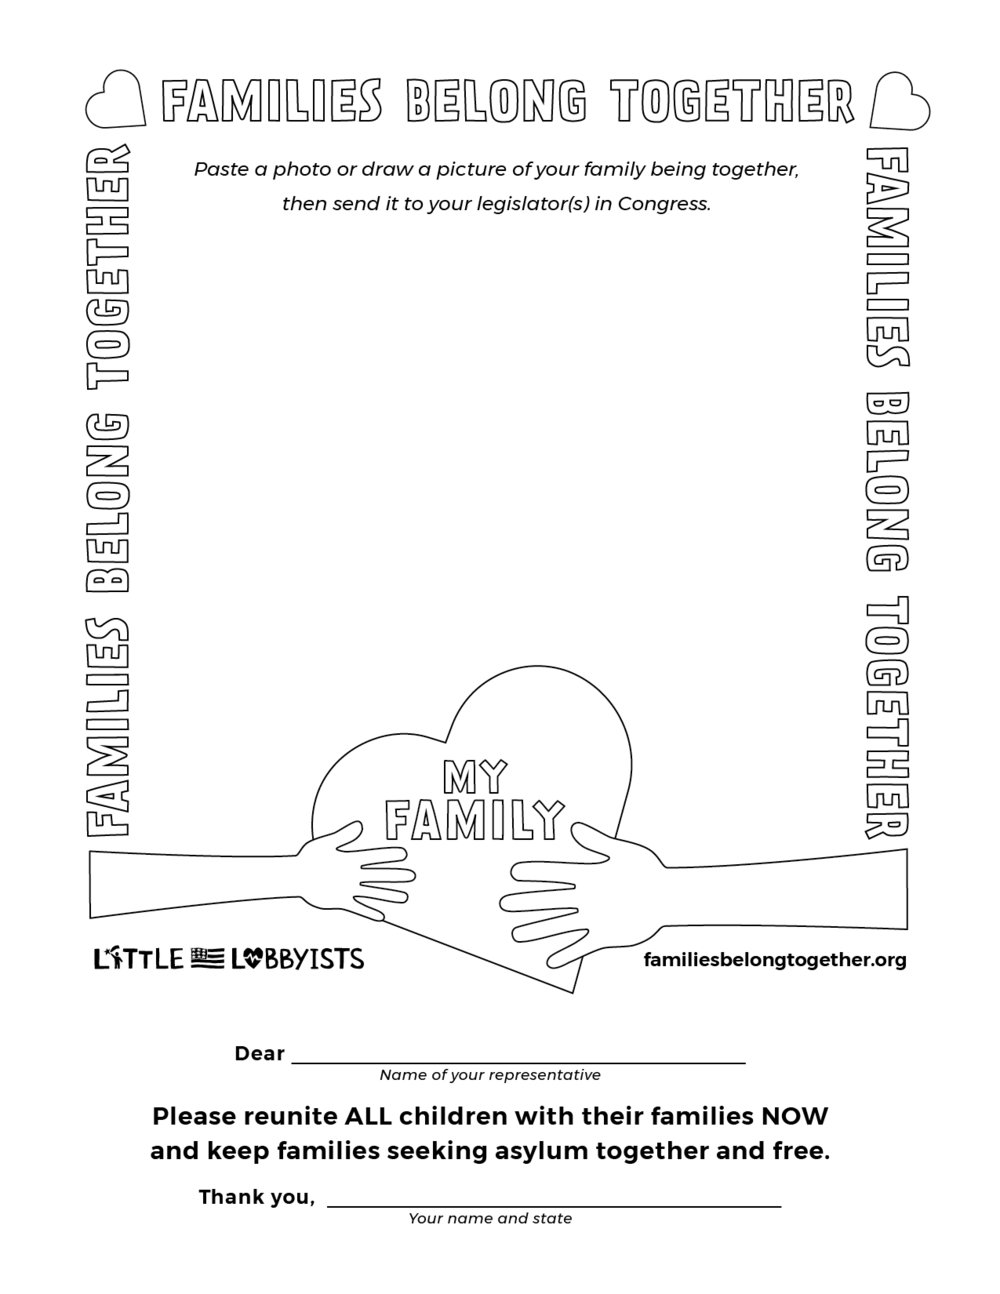 3. Give kids a colorful way to support kids - Children torn from their families could really use some friends right now. Who better than our kids to share the importance of family with legislators? Print this coloring page for your child (or even yourself!) to decorate and fill with a drawing or photo of your family being together. Mail it to the legislator you think needs to get this message. To find your legislator's address, click here. Don't forget to snap a photo of the finished masterpiece to share with us on Facebook, Twitter, or via email at contact@littlelobbyists.org